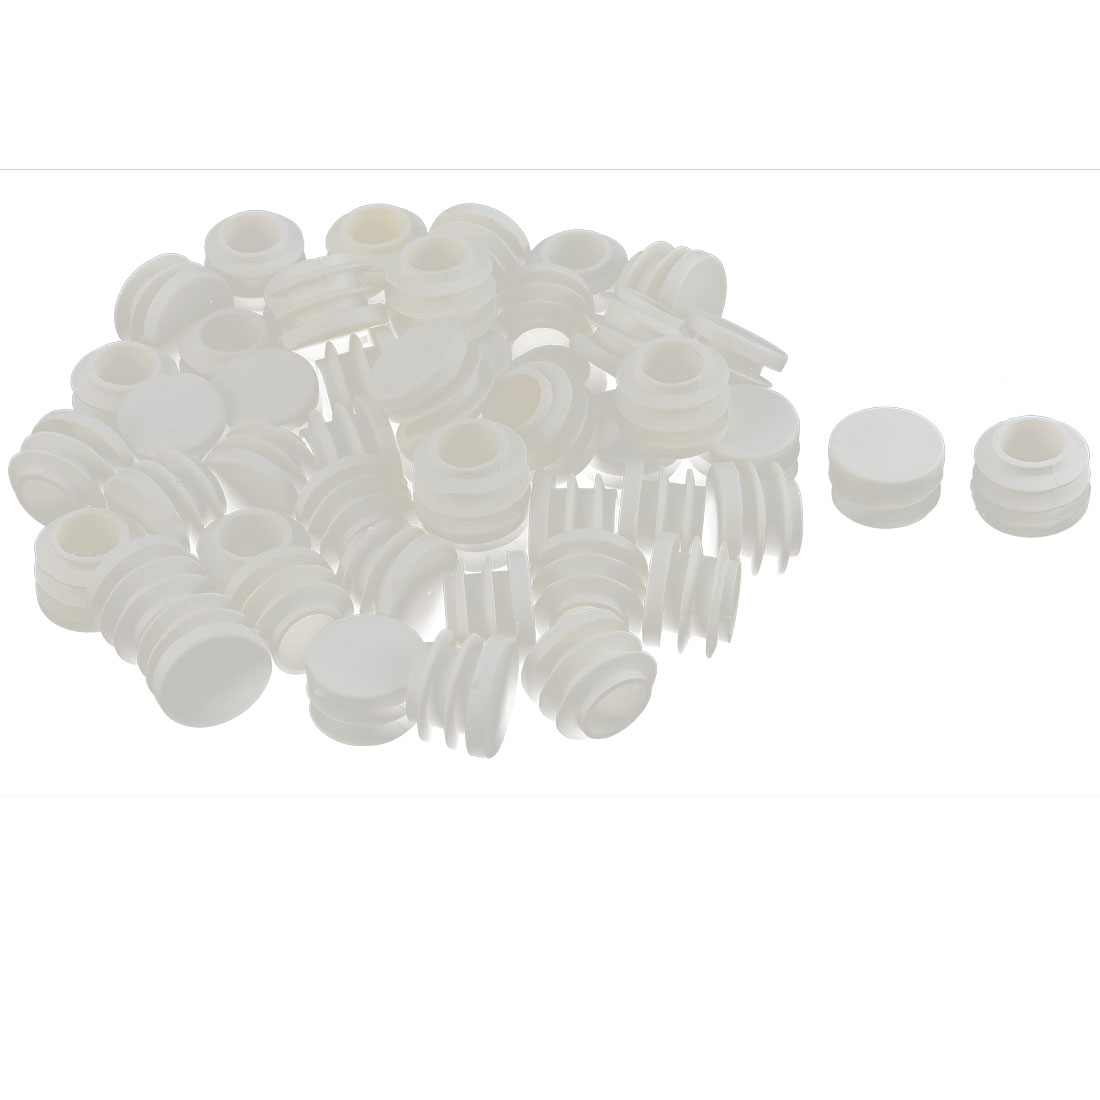 Table Chair Plastic Round Tube Pipe Insert Cap Cover Protector White 19mm Dia 50pcs